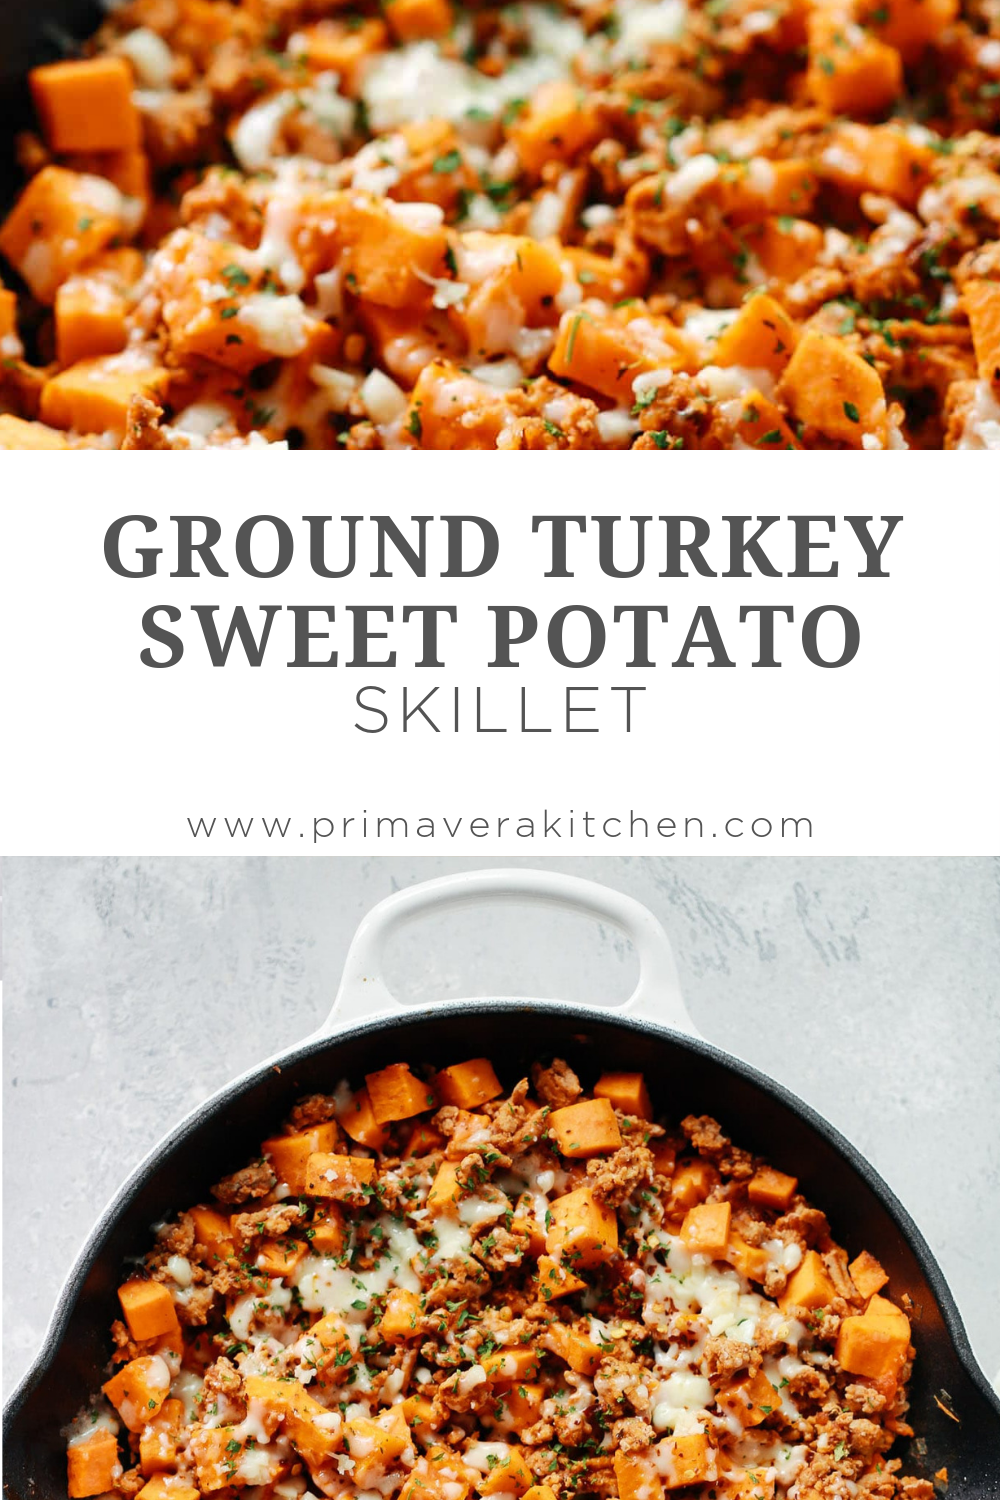 Photo of This Ground Turkey Sweet Potato Skillet will be ready to eat in less than 30 min…